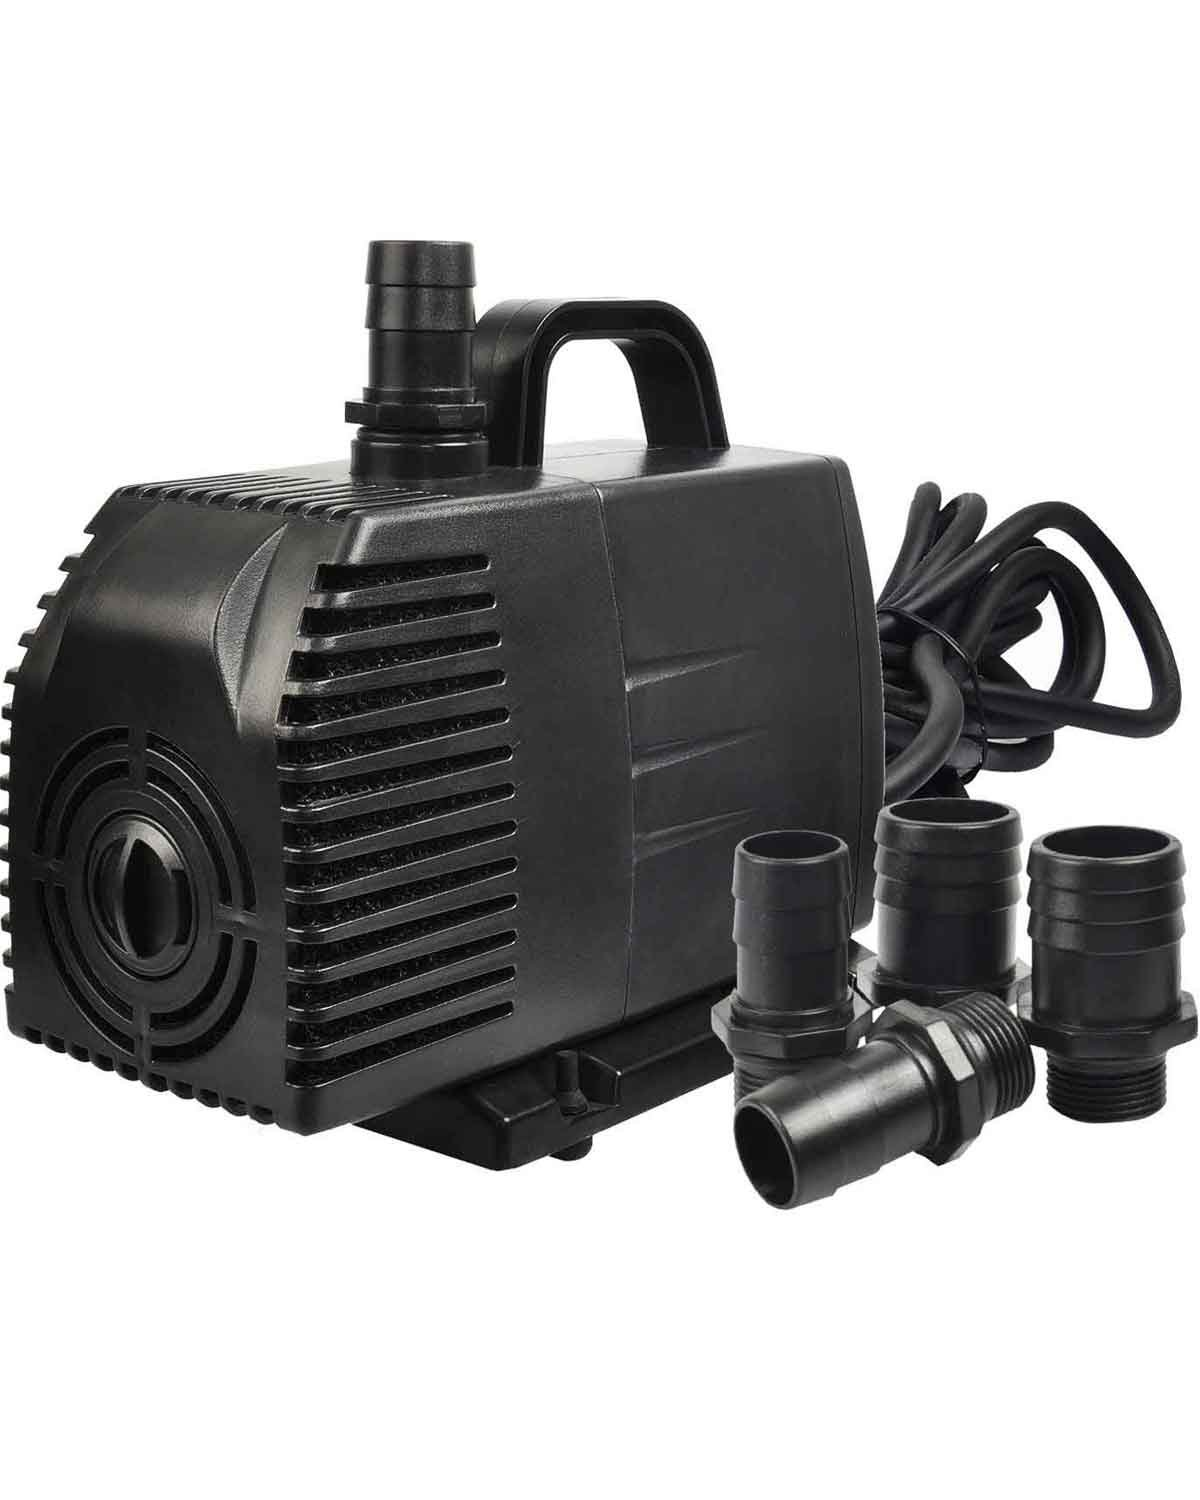 Simple Deluxe 1056 GPH UL Listed Submersible Pump with 15' Cord, Water Pump for Fish Tank, Hydroponics, Aquaponics, Fountains, Ponds, Statuary, Aquariums